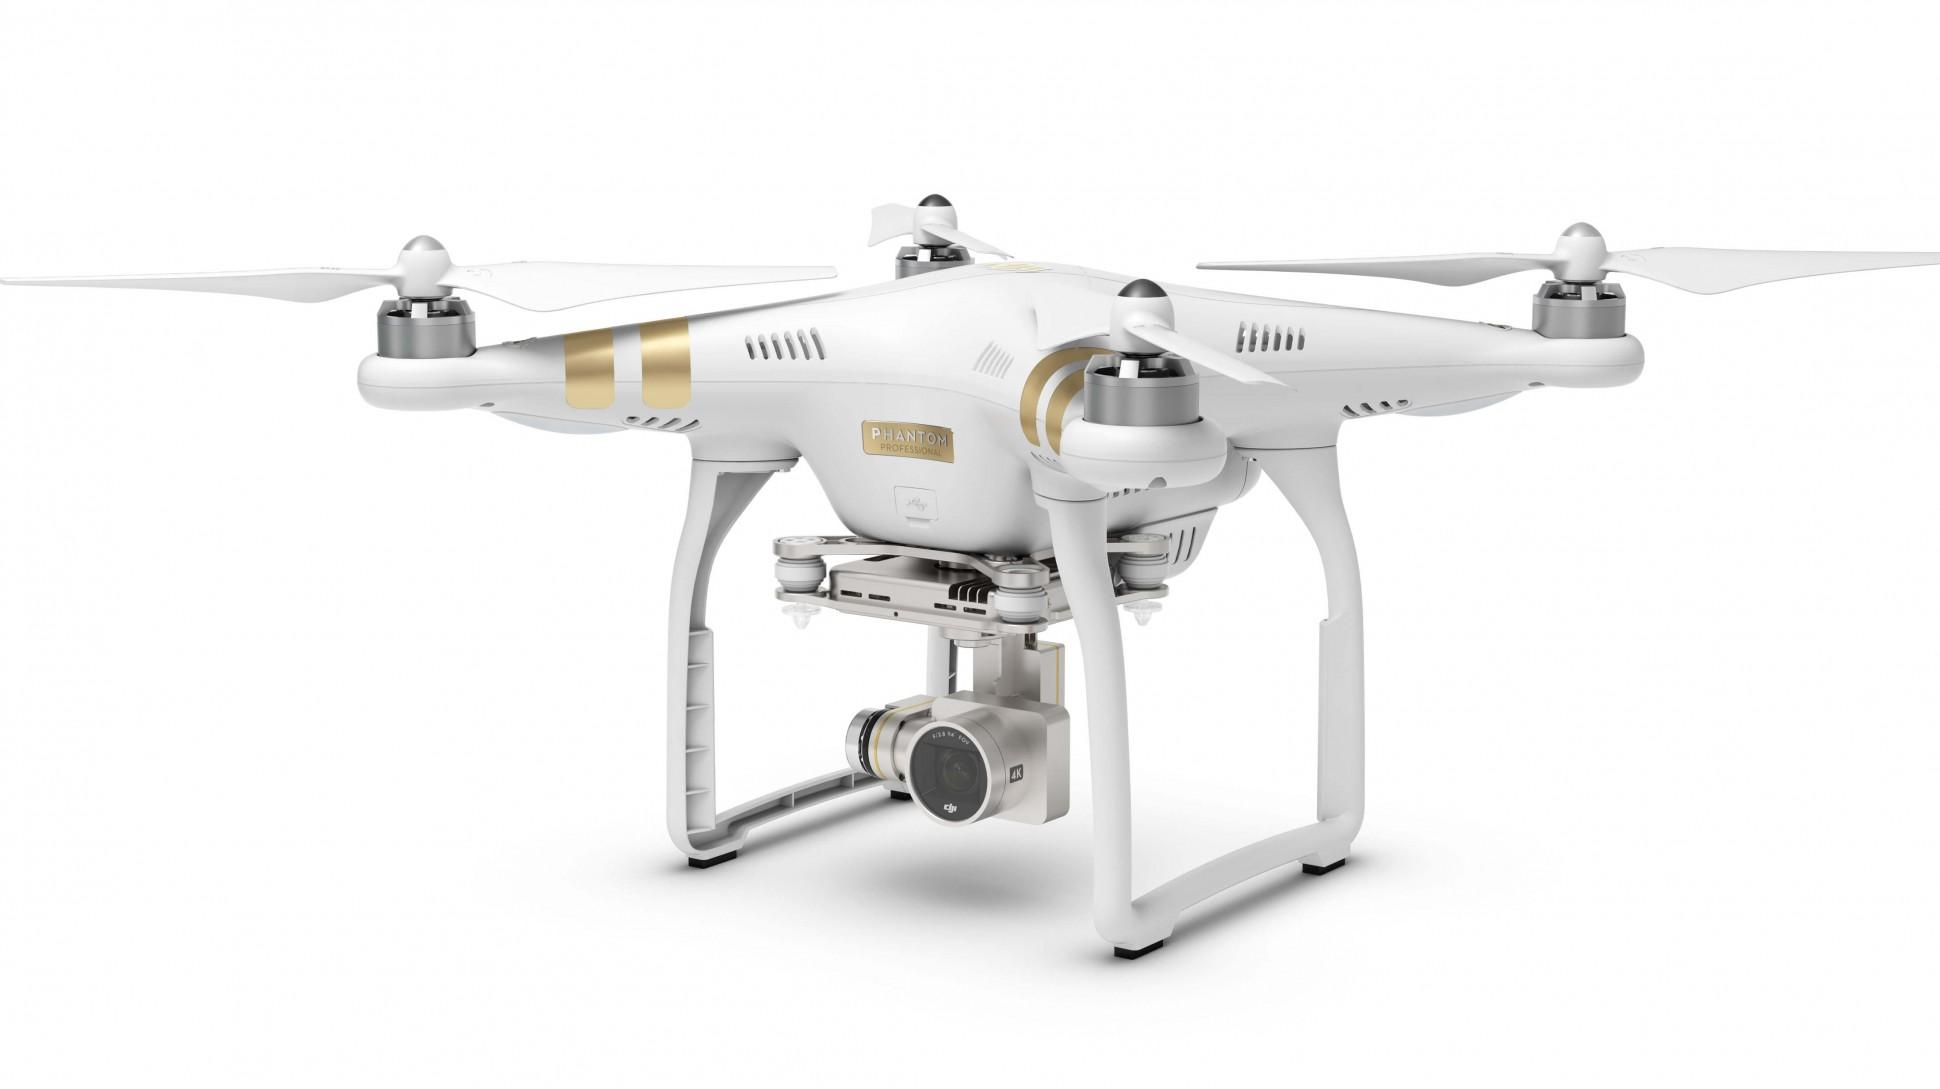 The World's Largest Drone Company Unveils Newest Product DJI Phantom 3